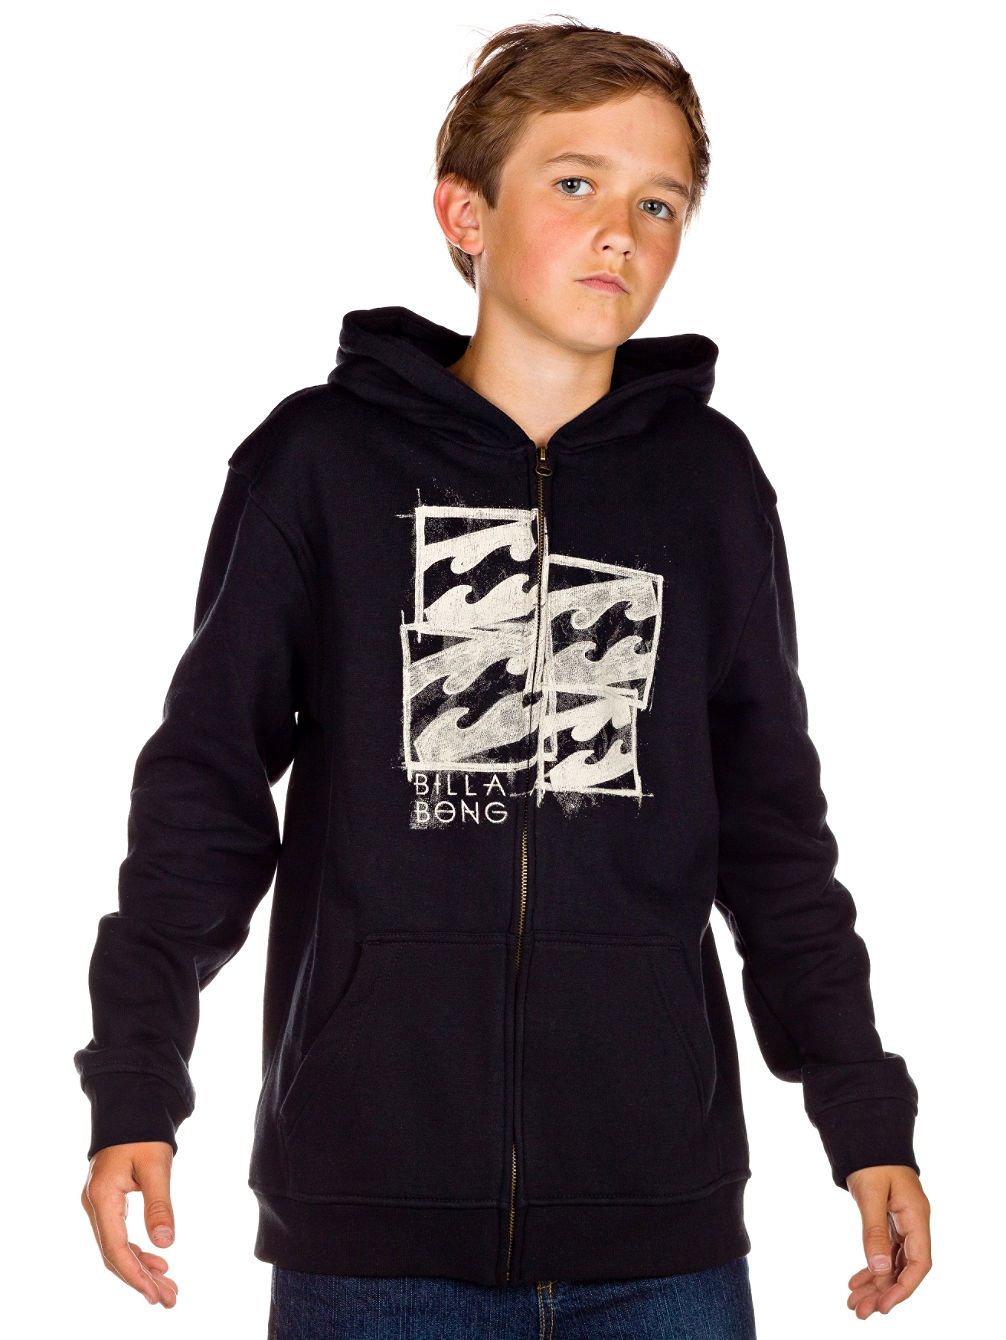 Recoh Zip Hood youth